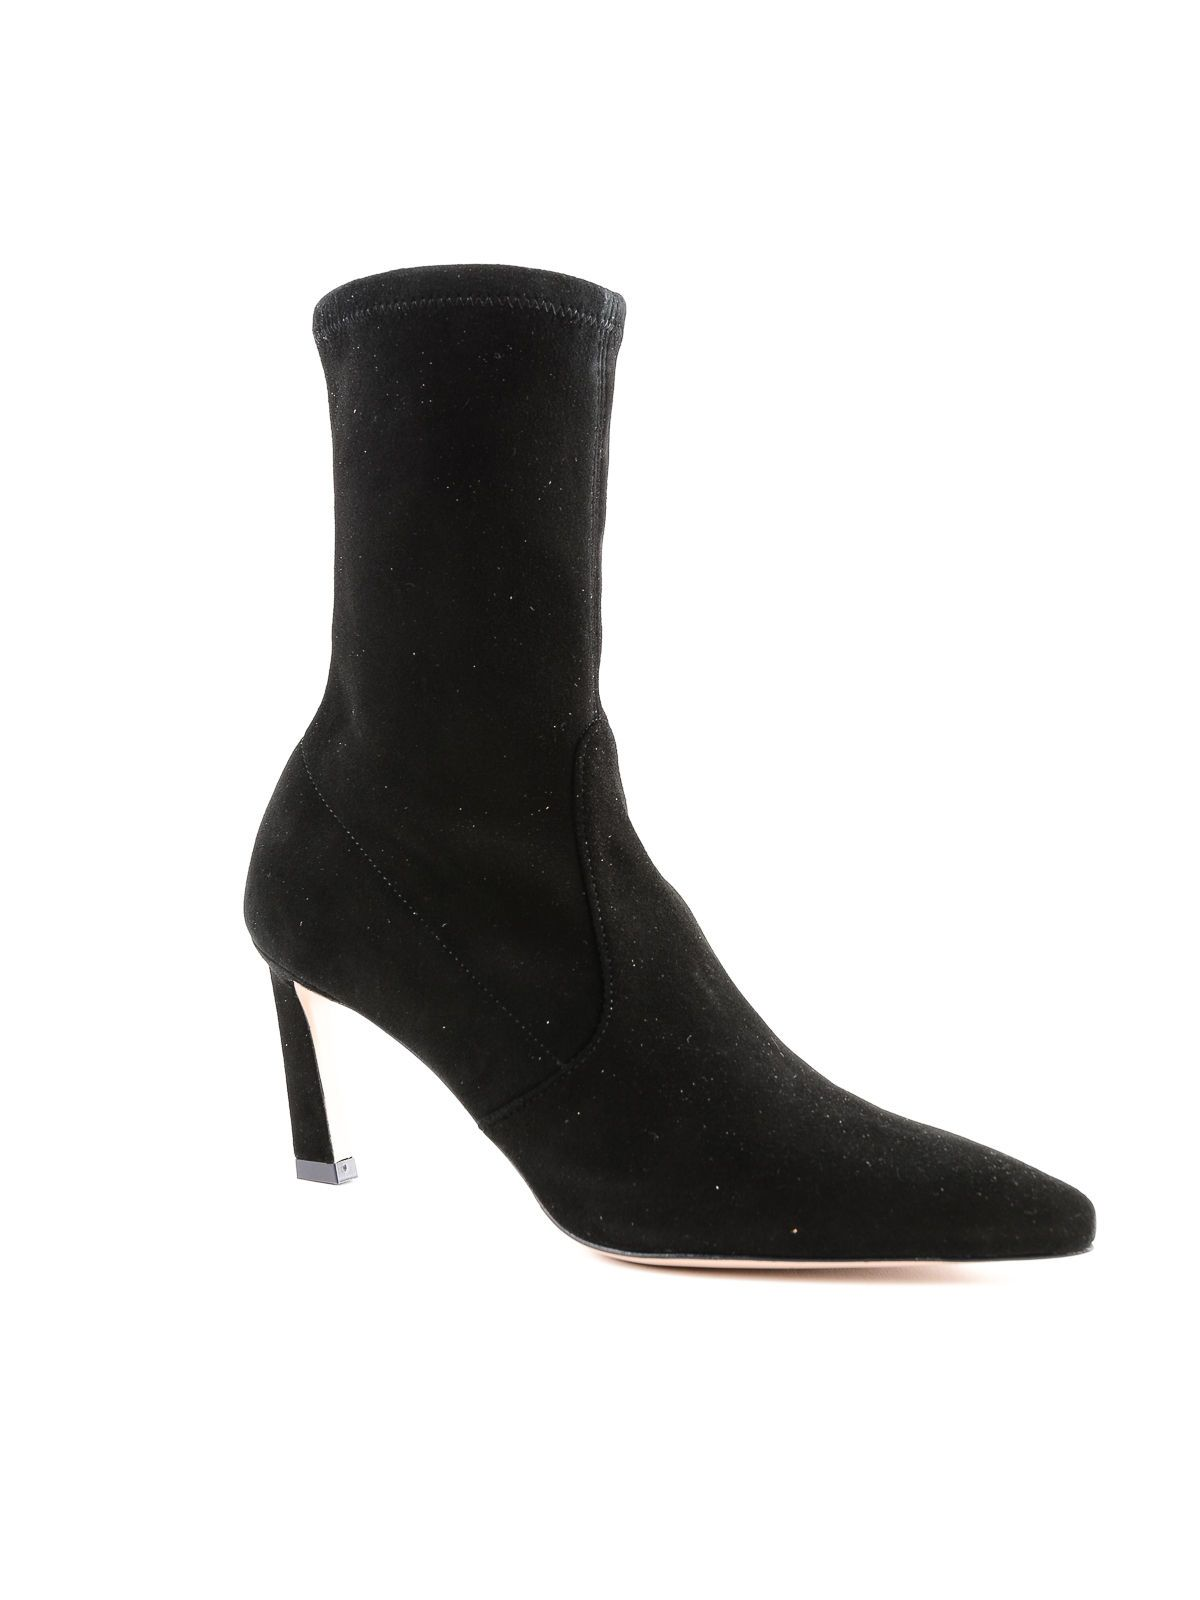 Rapture boots - Black Stuart Weitzman Websites Cheap Online Discount Hot Sale Buy Cheap Latest Collections Cheap Clearance Store NvQUBq6a